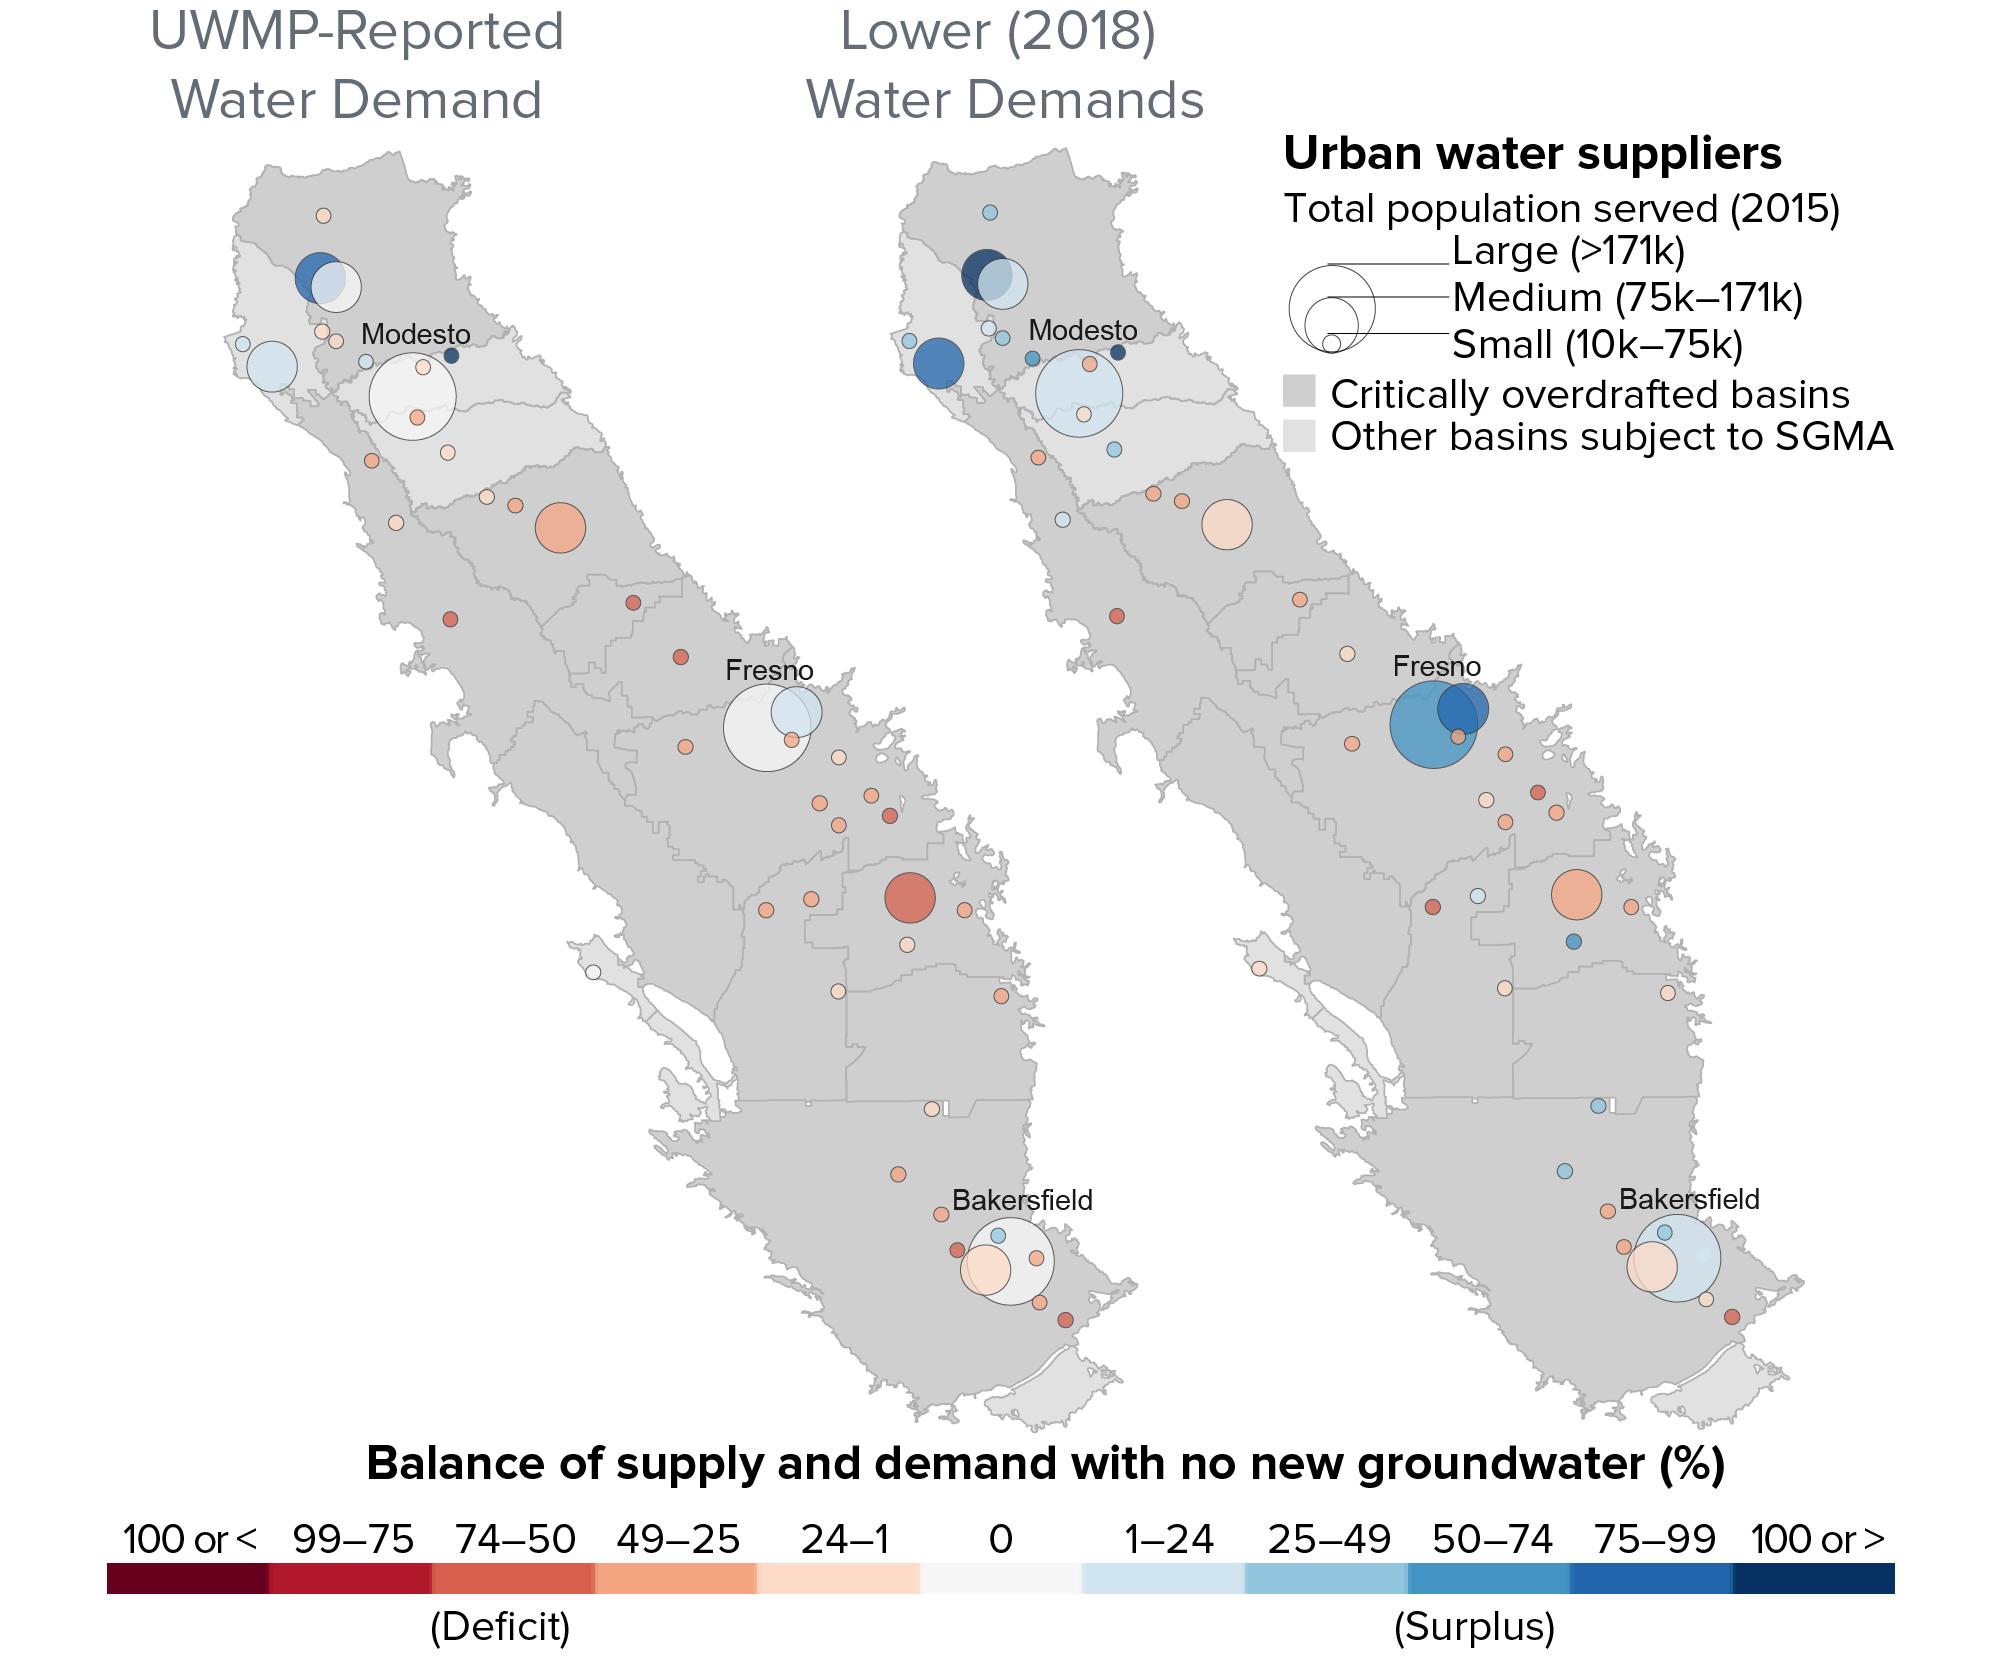 figure - Water demand and supply projections demonstrate potential for shortfalls